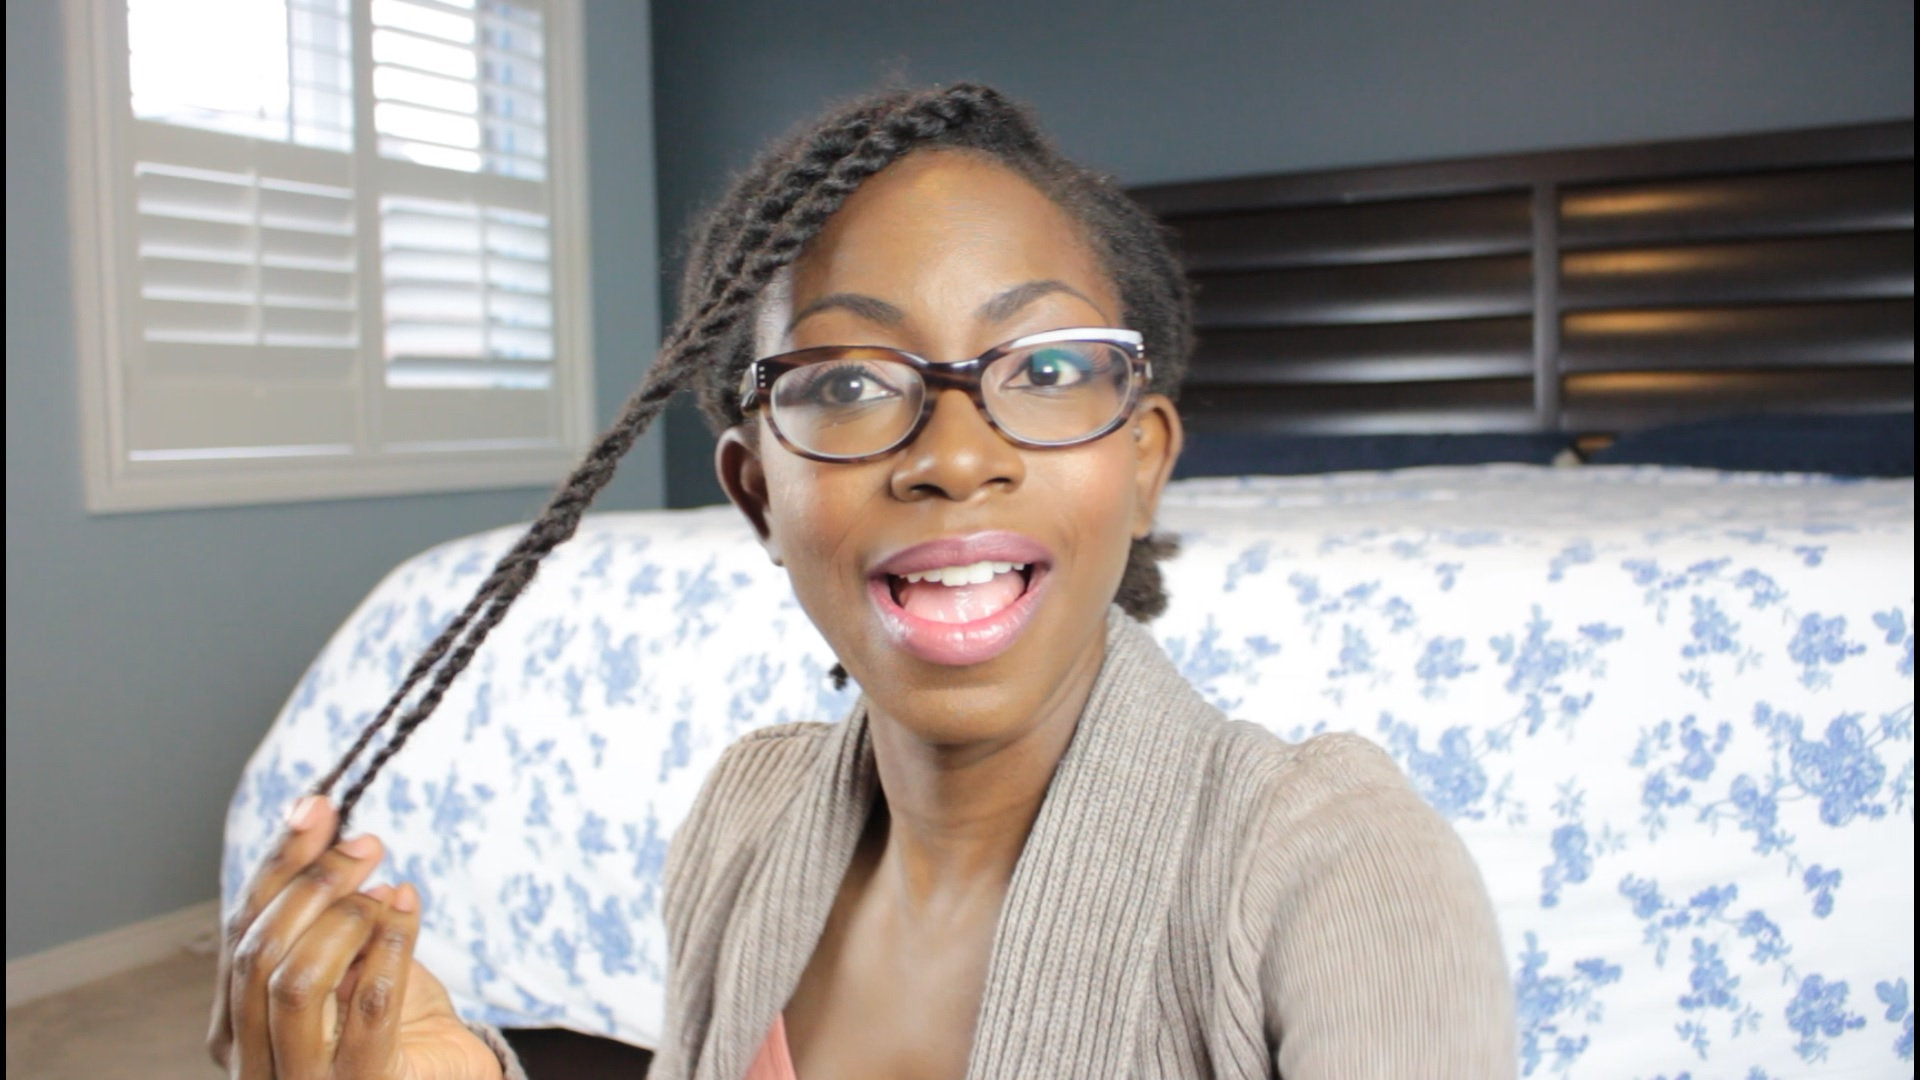 Installing two strand twists on 4c hair has never been easier